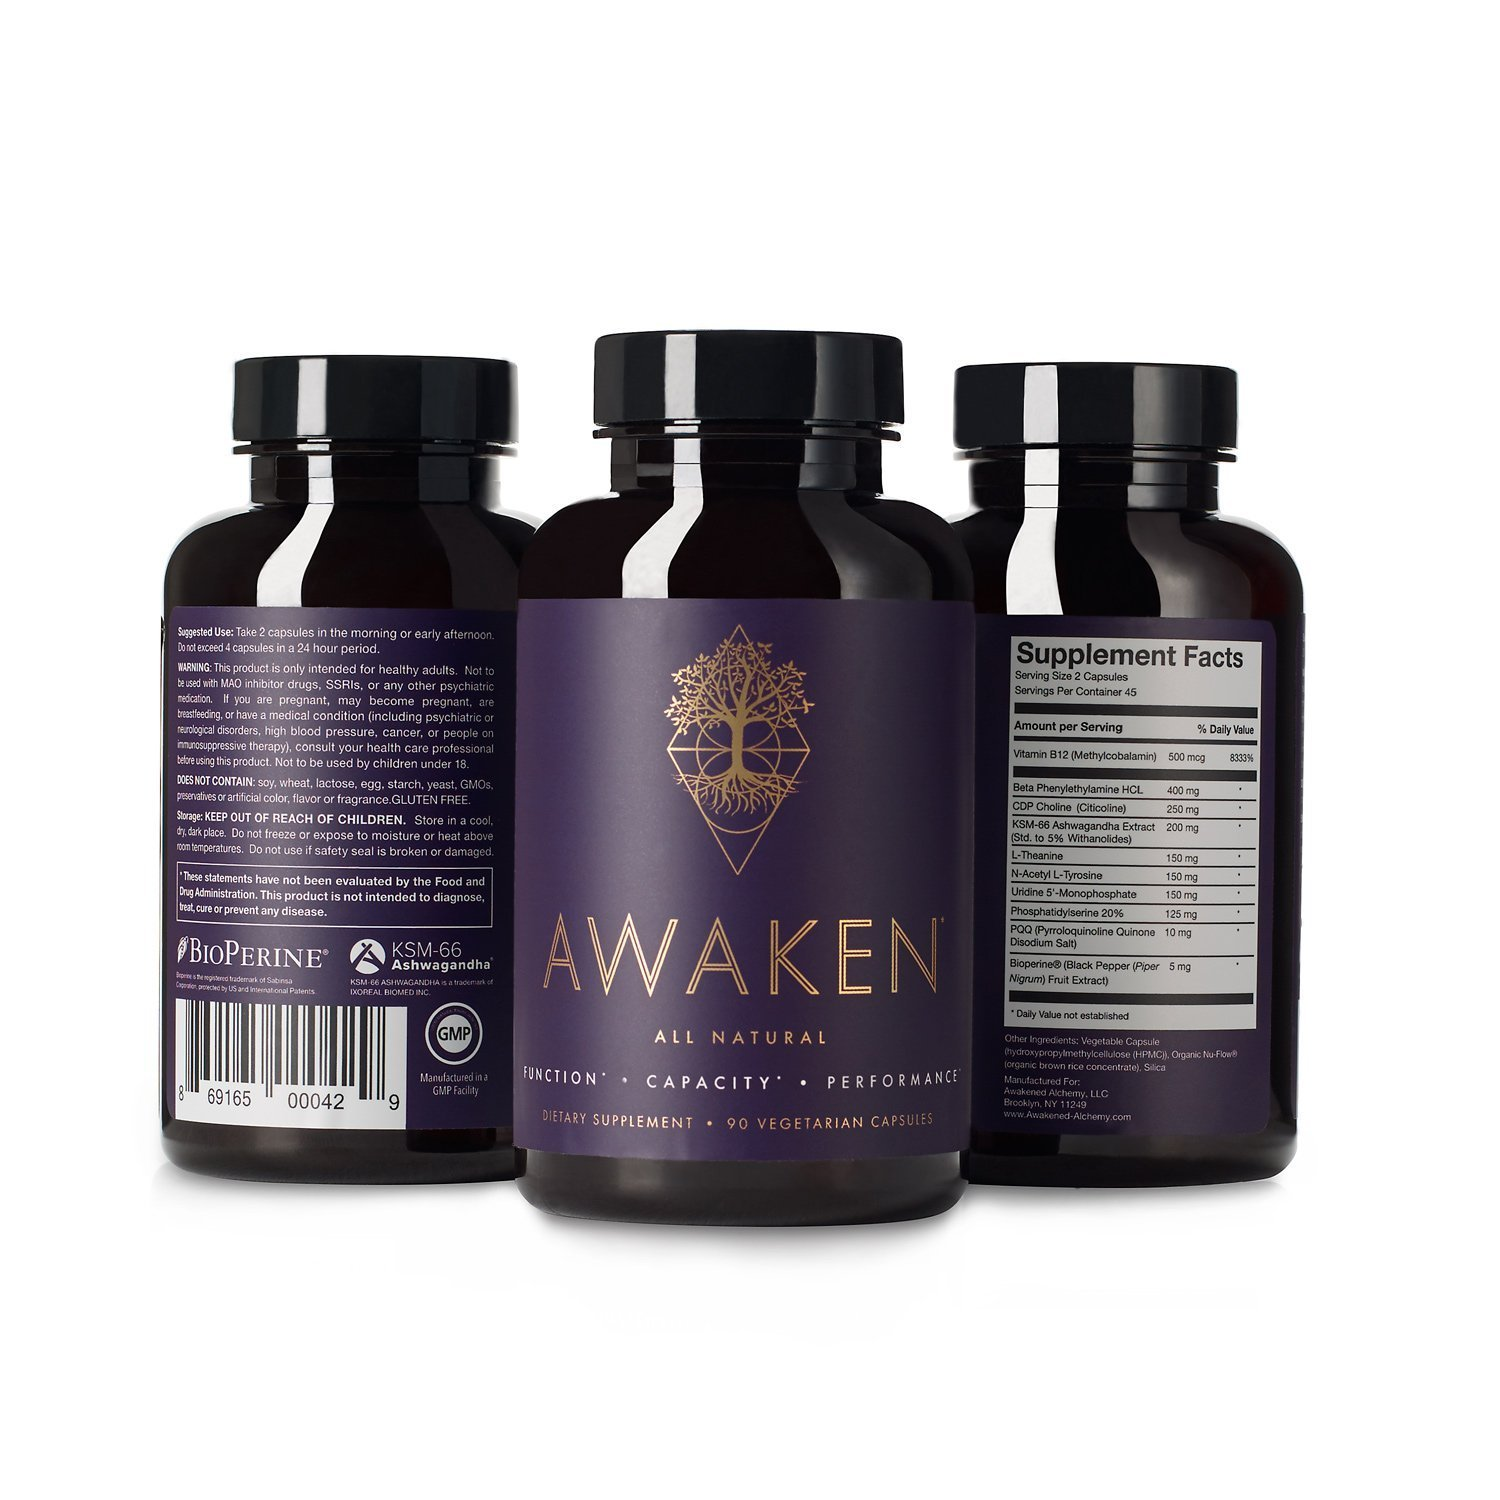 Awaken Supplement Facts